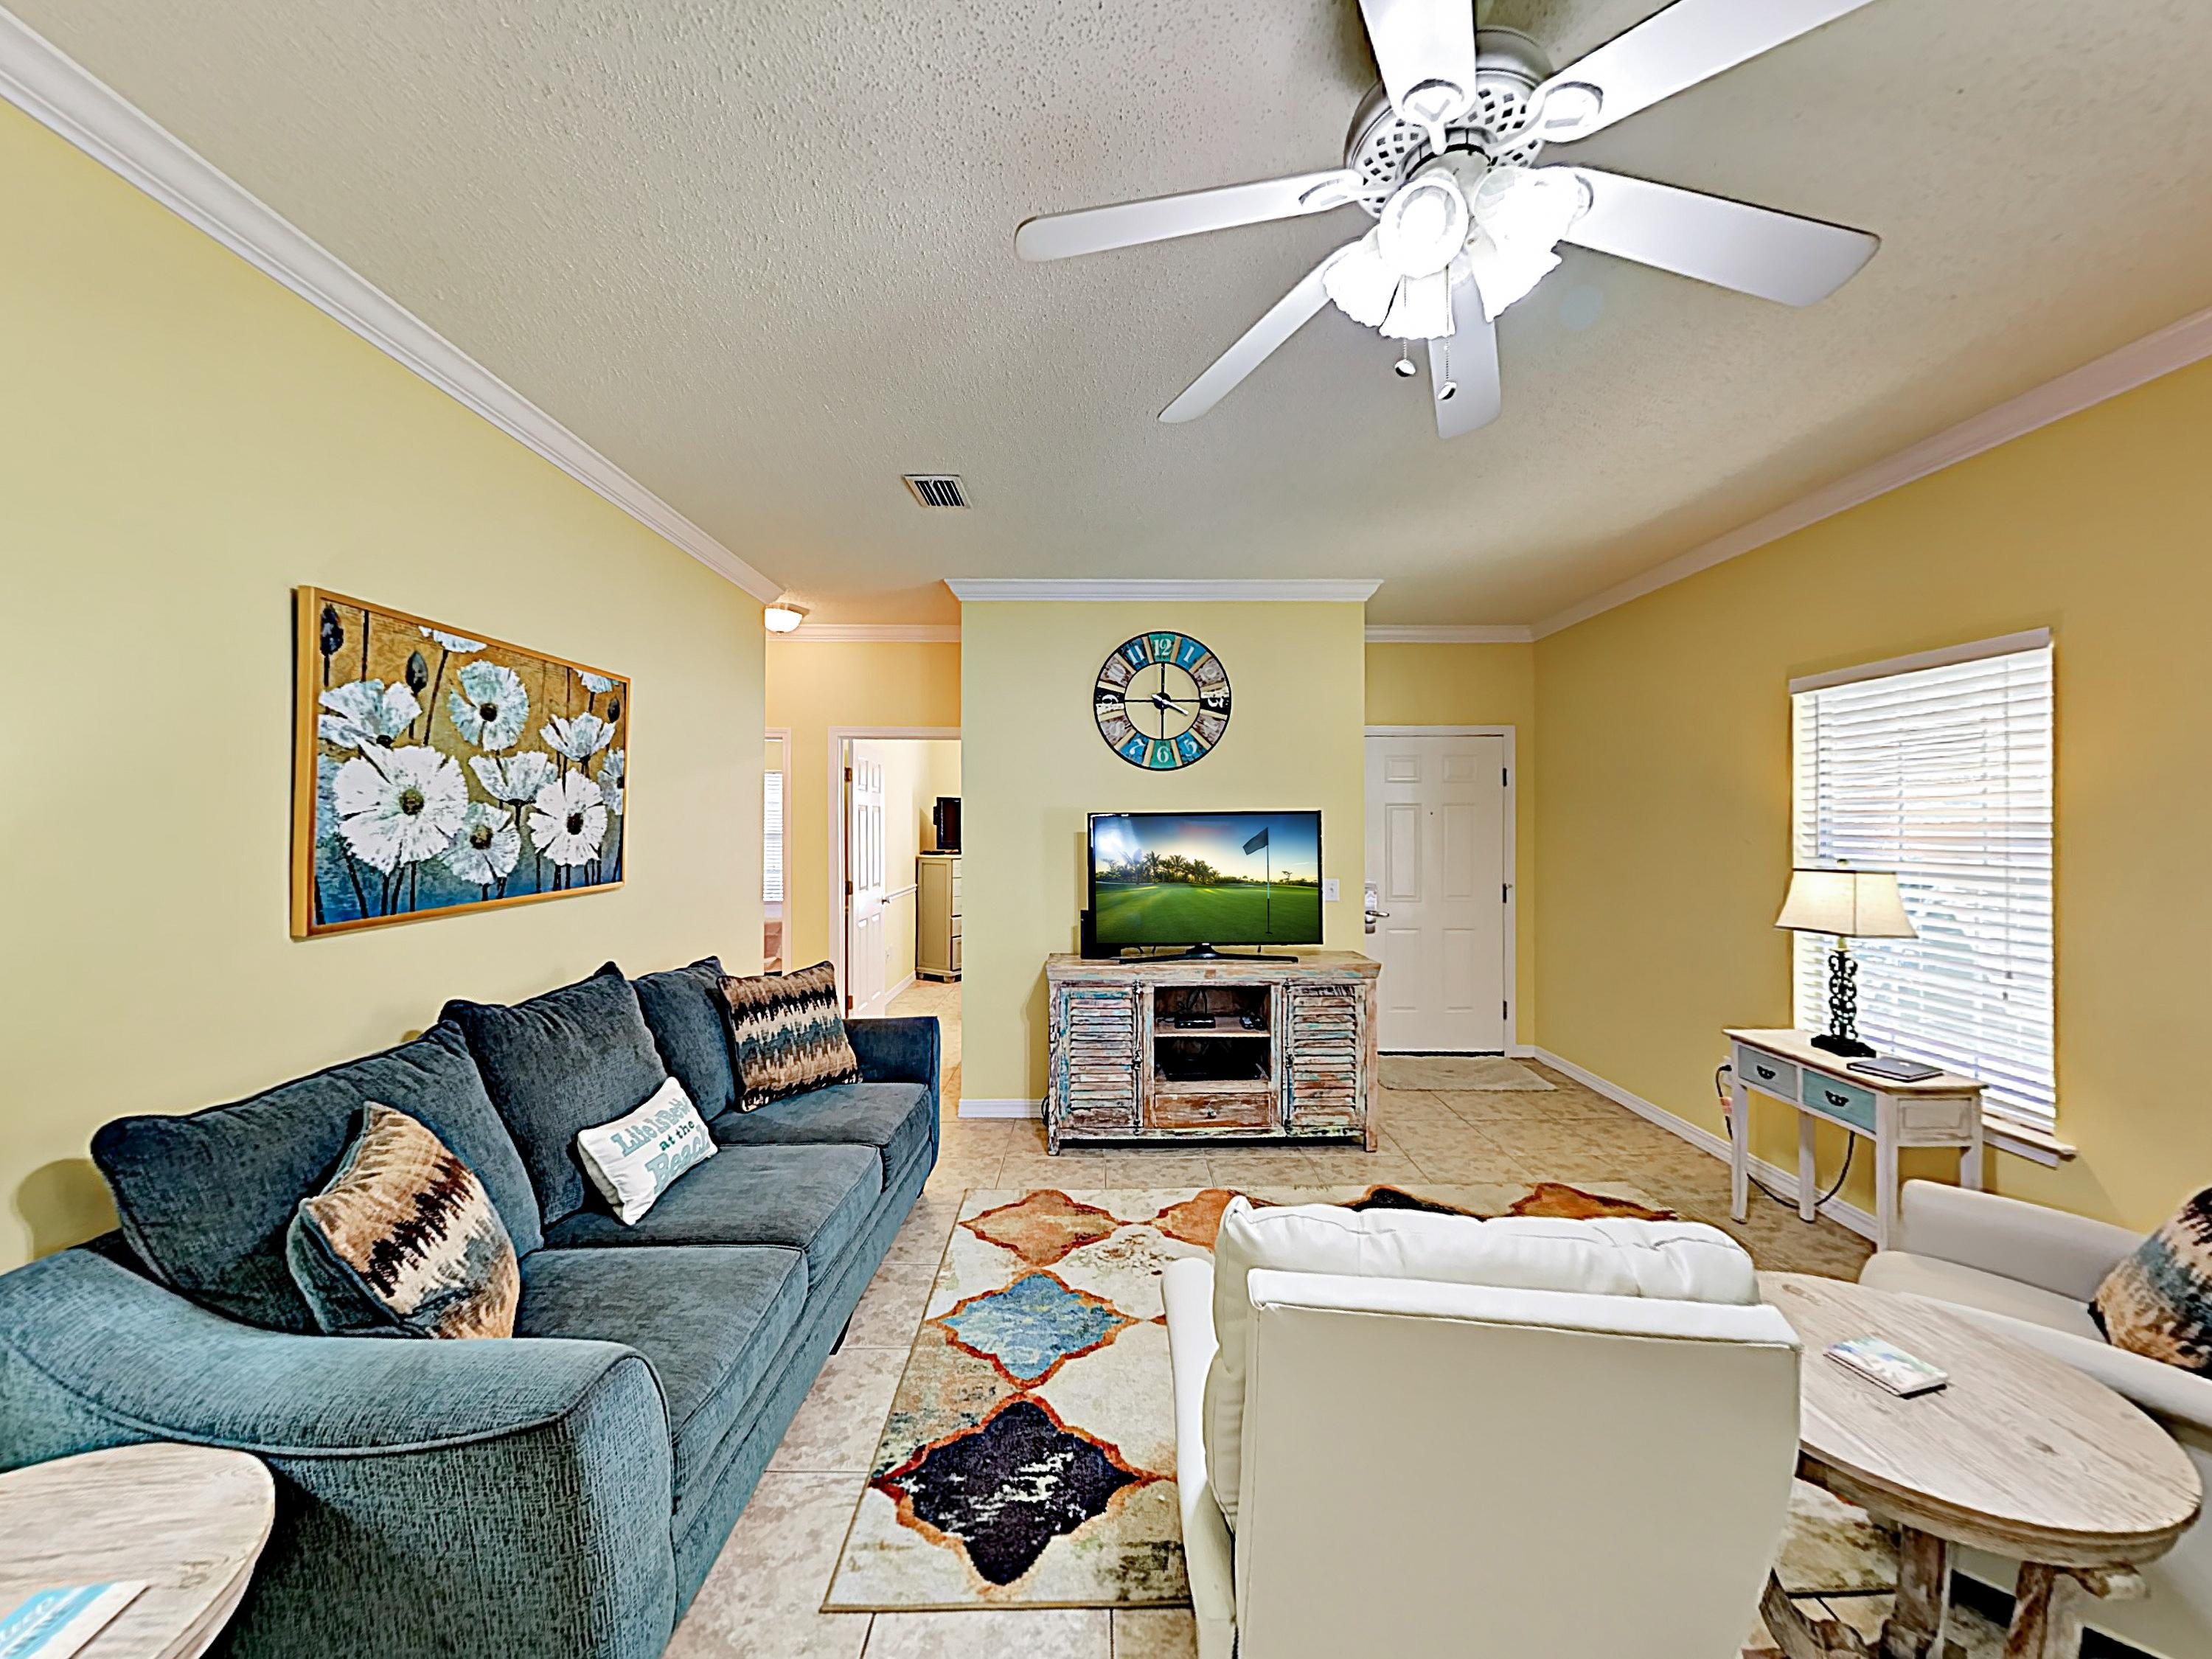 Welcome to Orange Beach! This retreat is professionally managed by TurnKey Vacation Rentals.